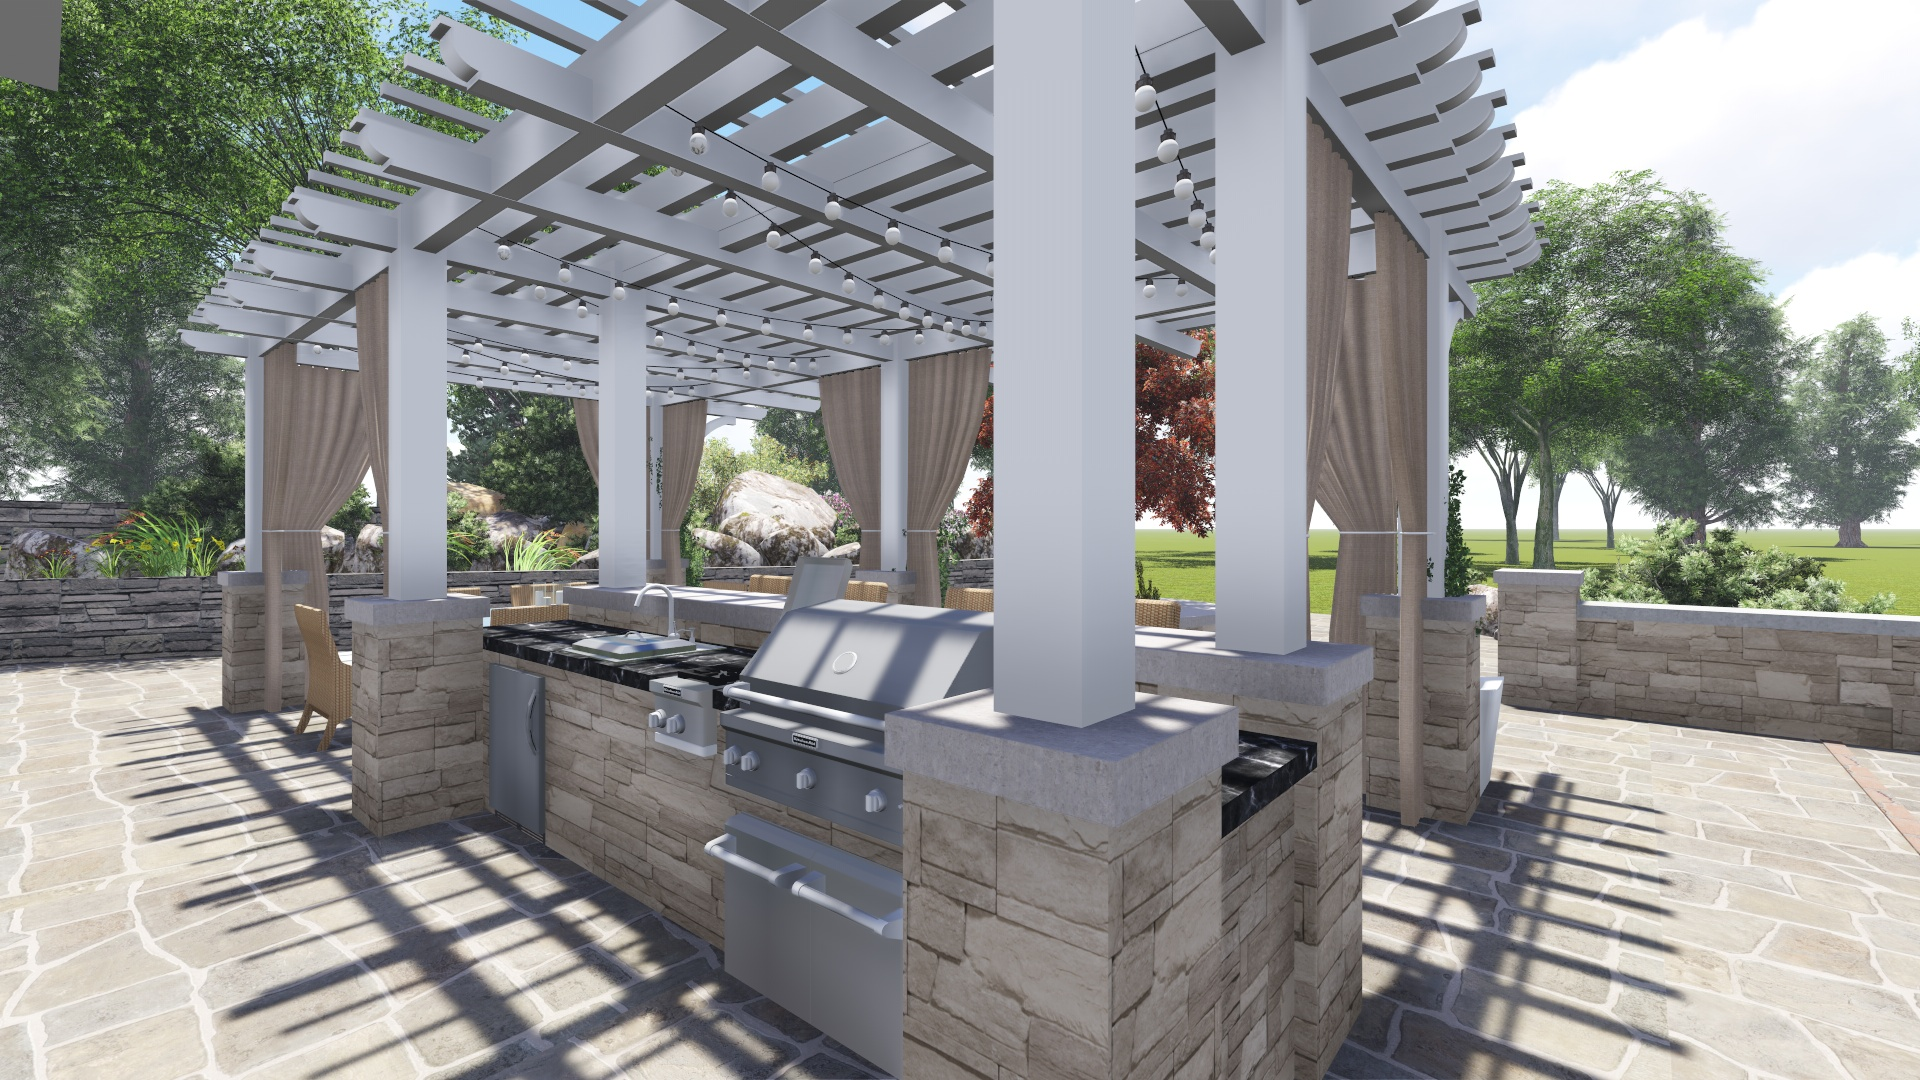 PROCESS: New outdoor kitchen